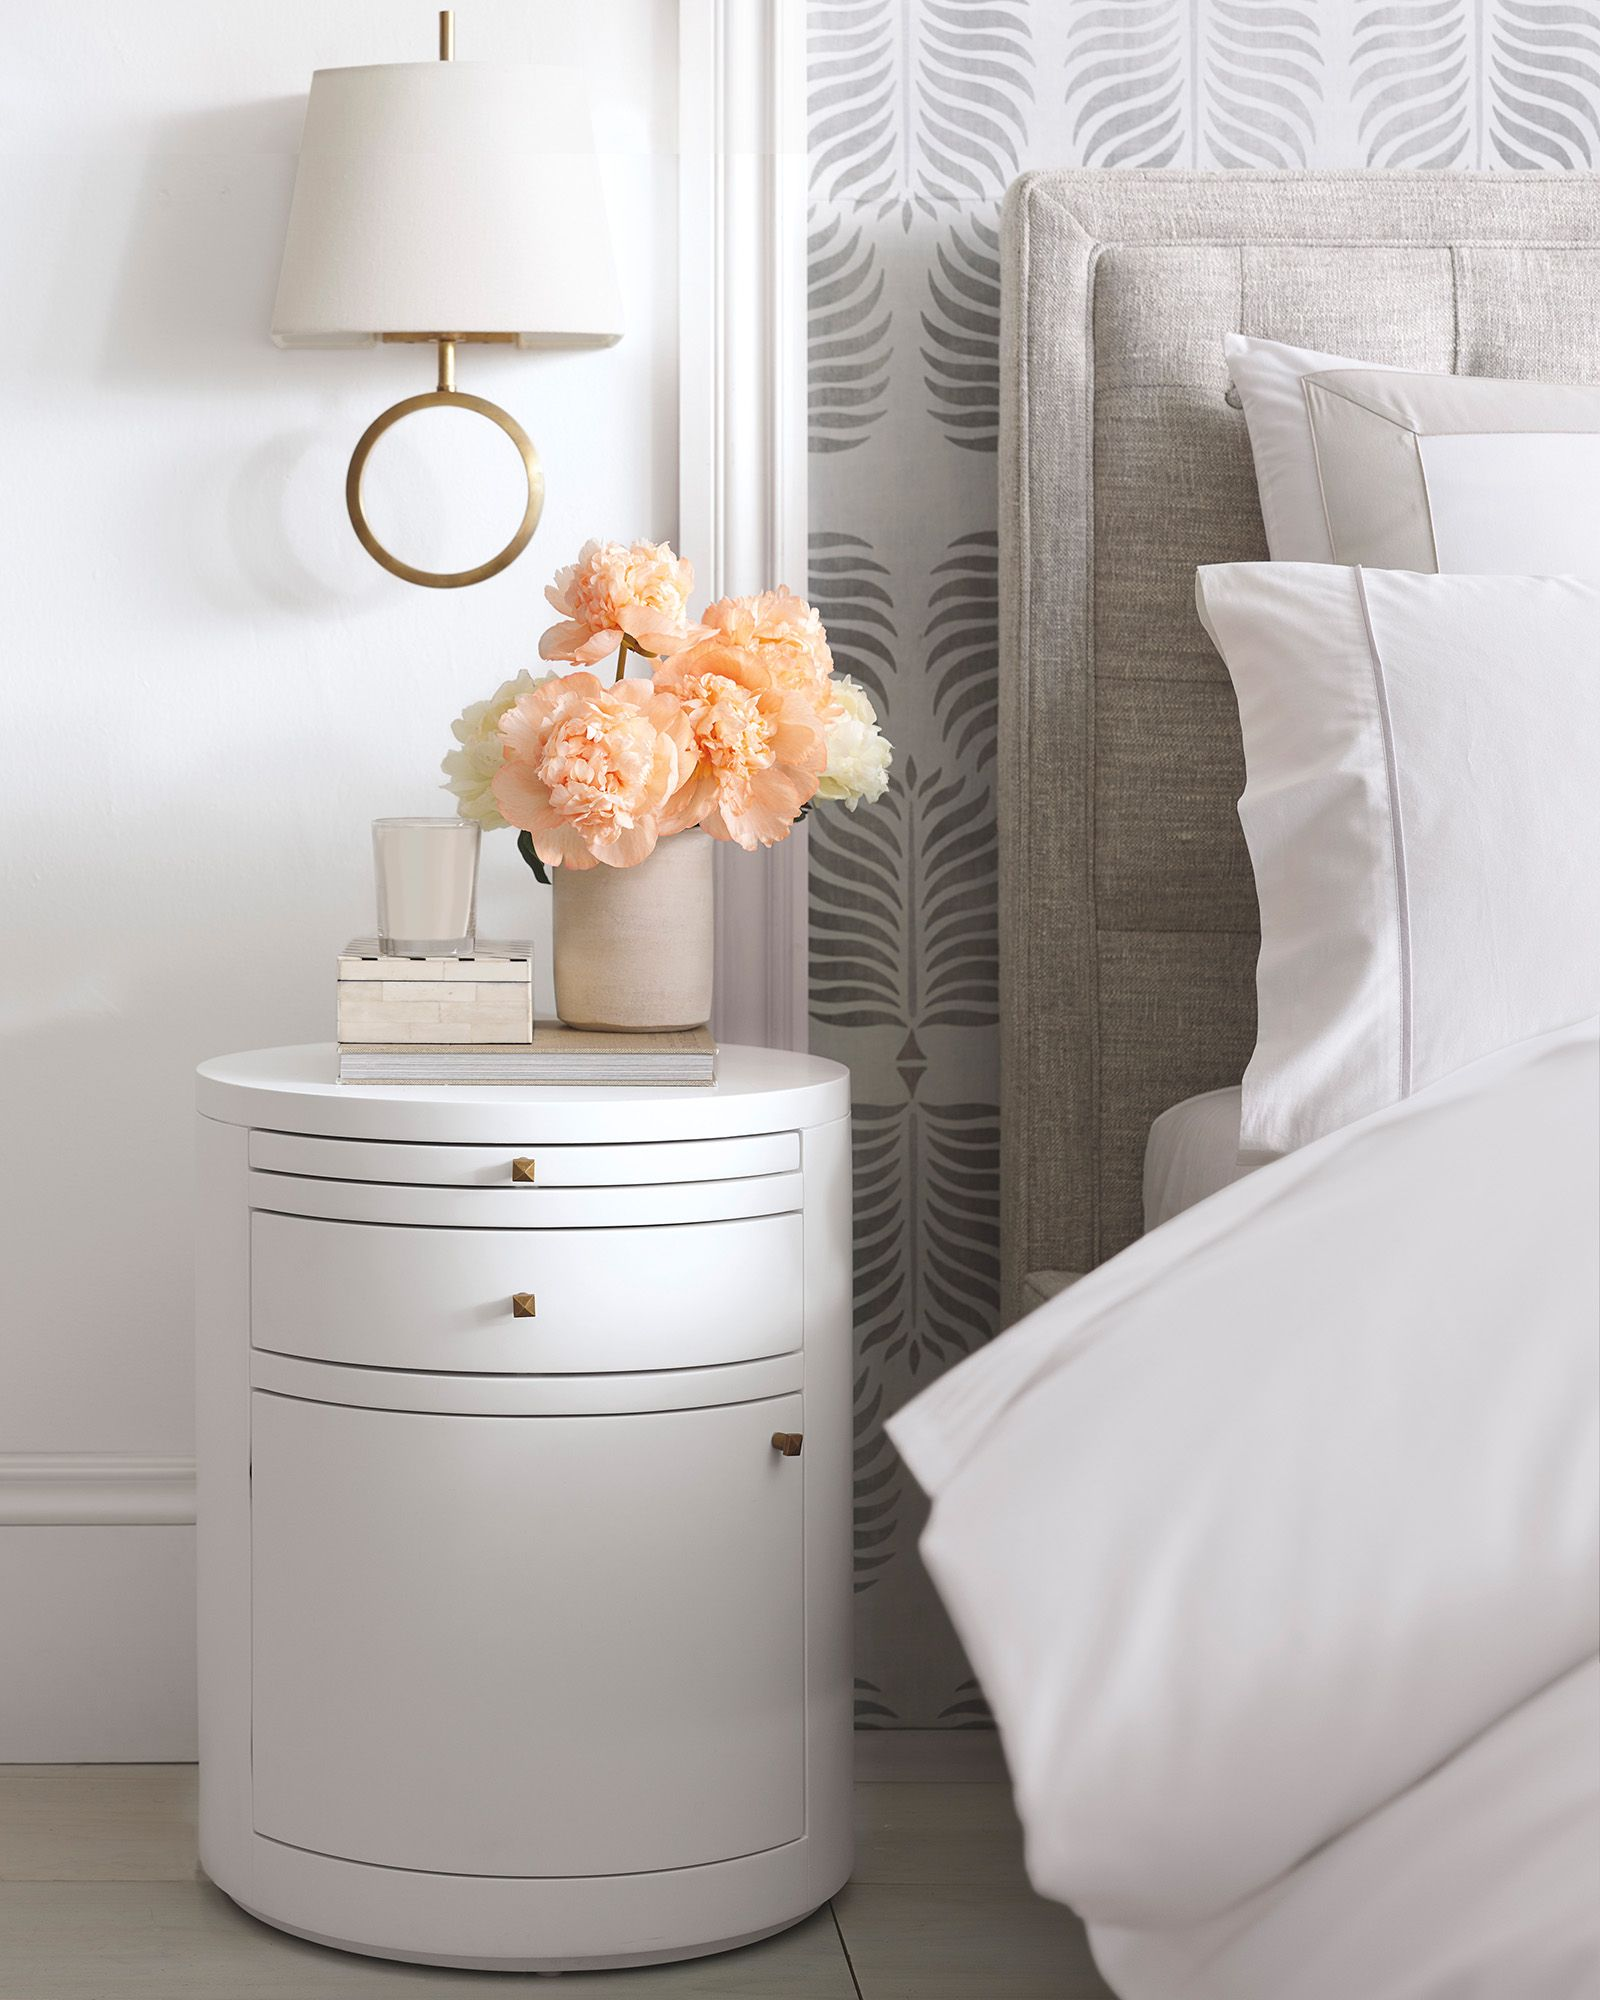 Pinecrest Side Table In 2021 Side Tables Bedroom Side Table Decor Bedroom Side Table Decor